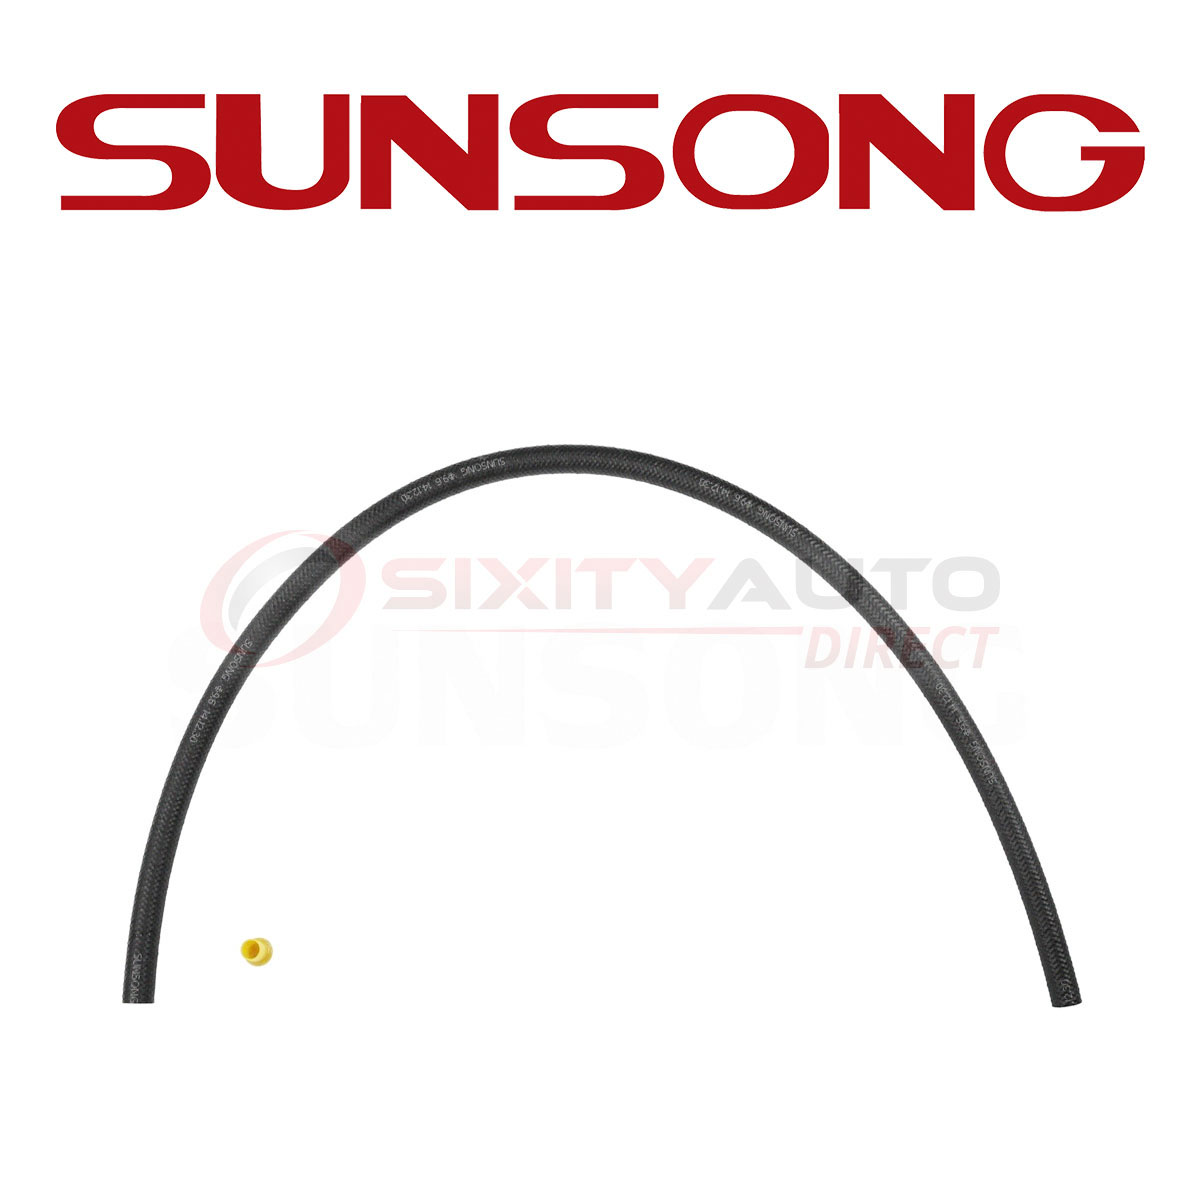 Sunsong Power Steering Return Hose For 1971-1994 Cadillac